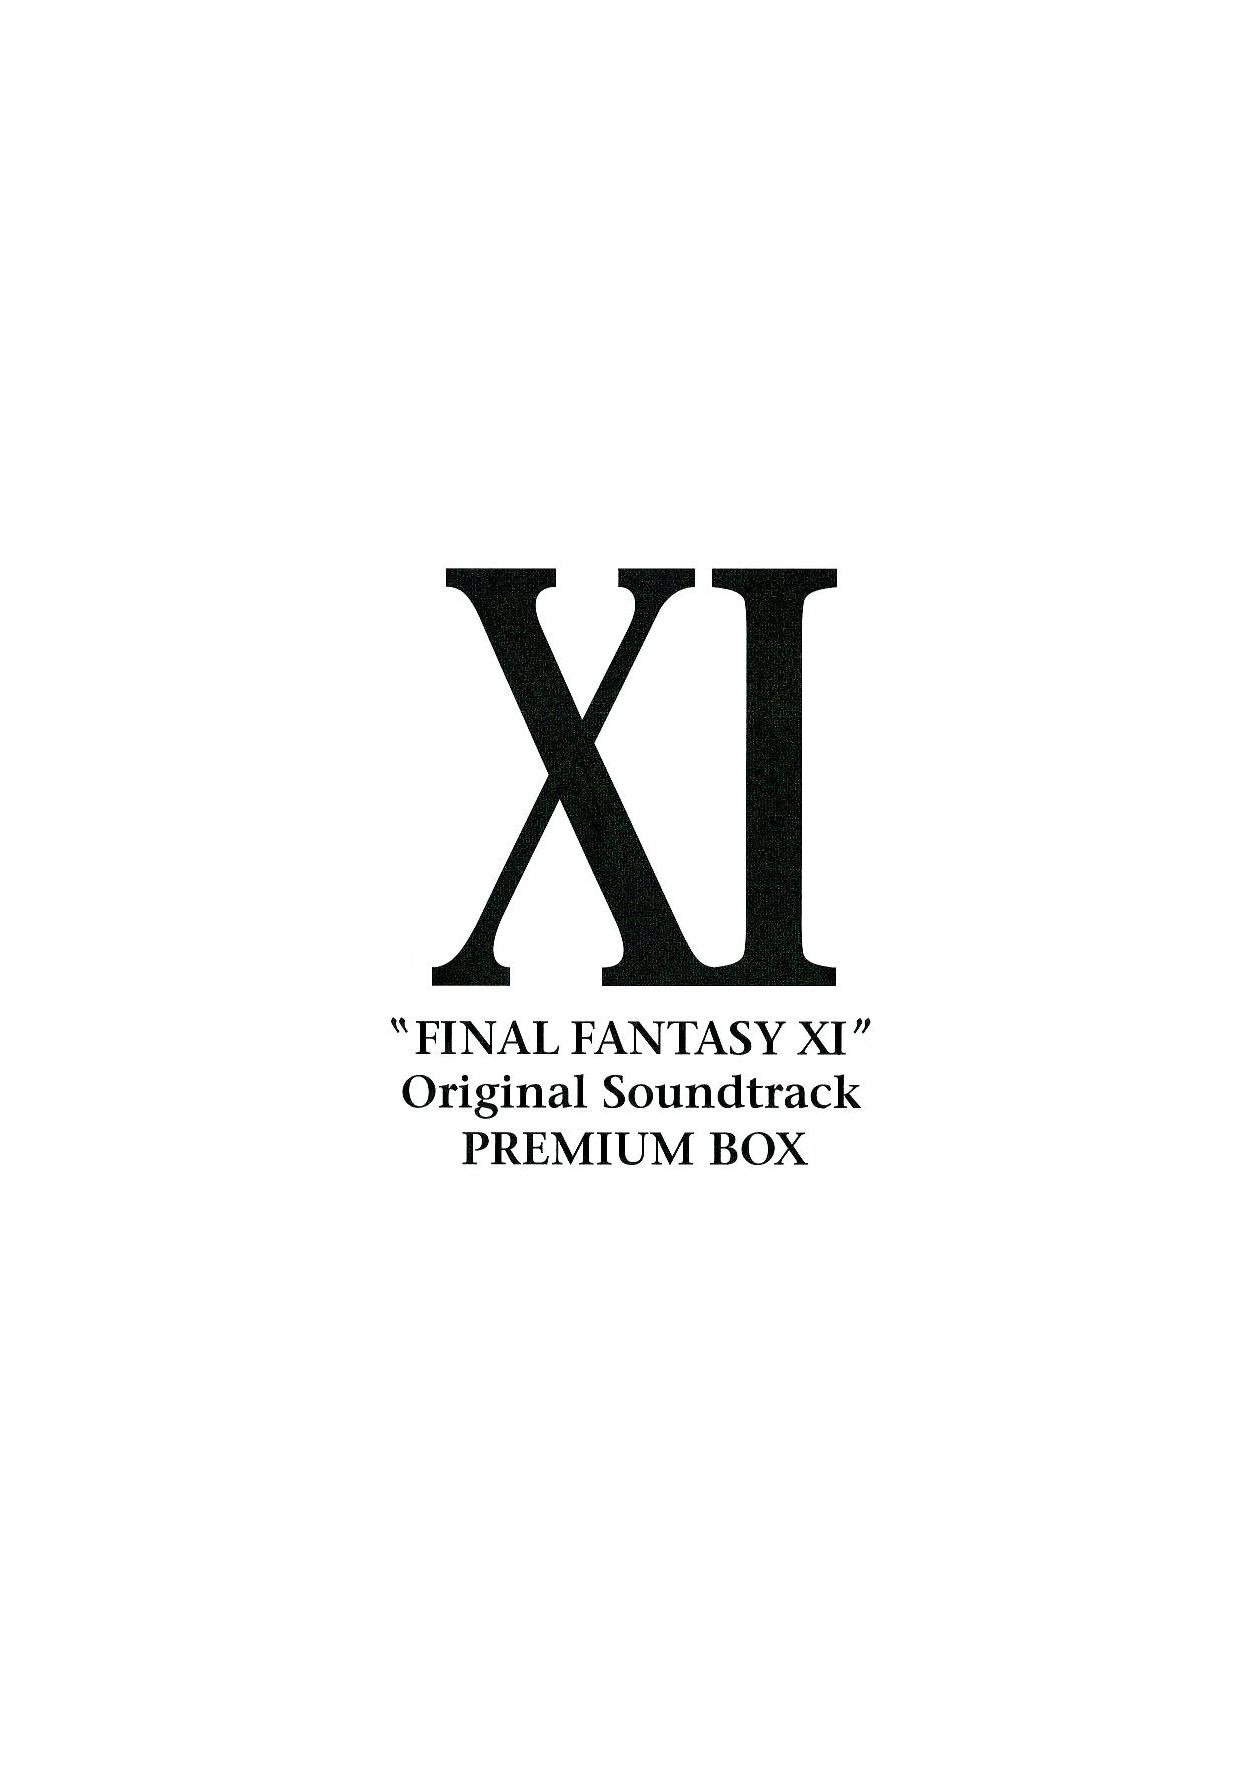 Final Fantasy Xi Original Soundtrack Premium Box